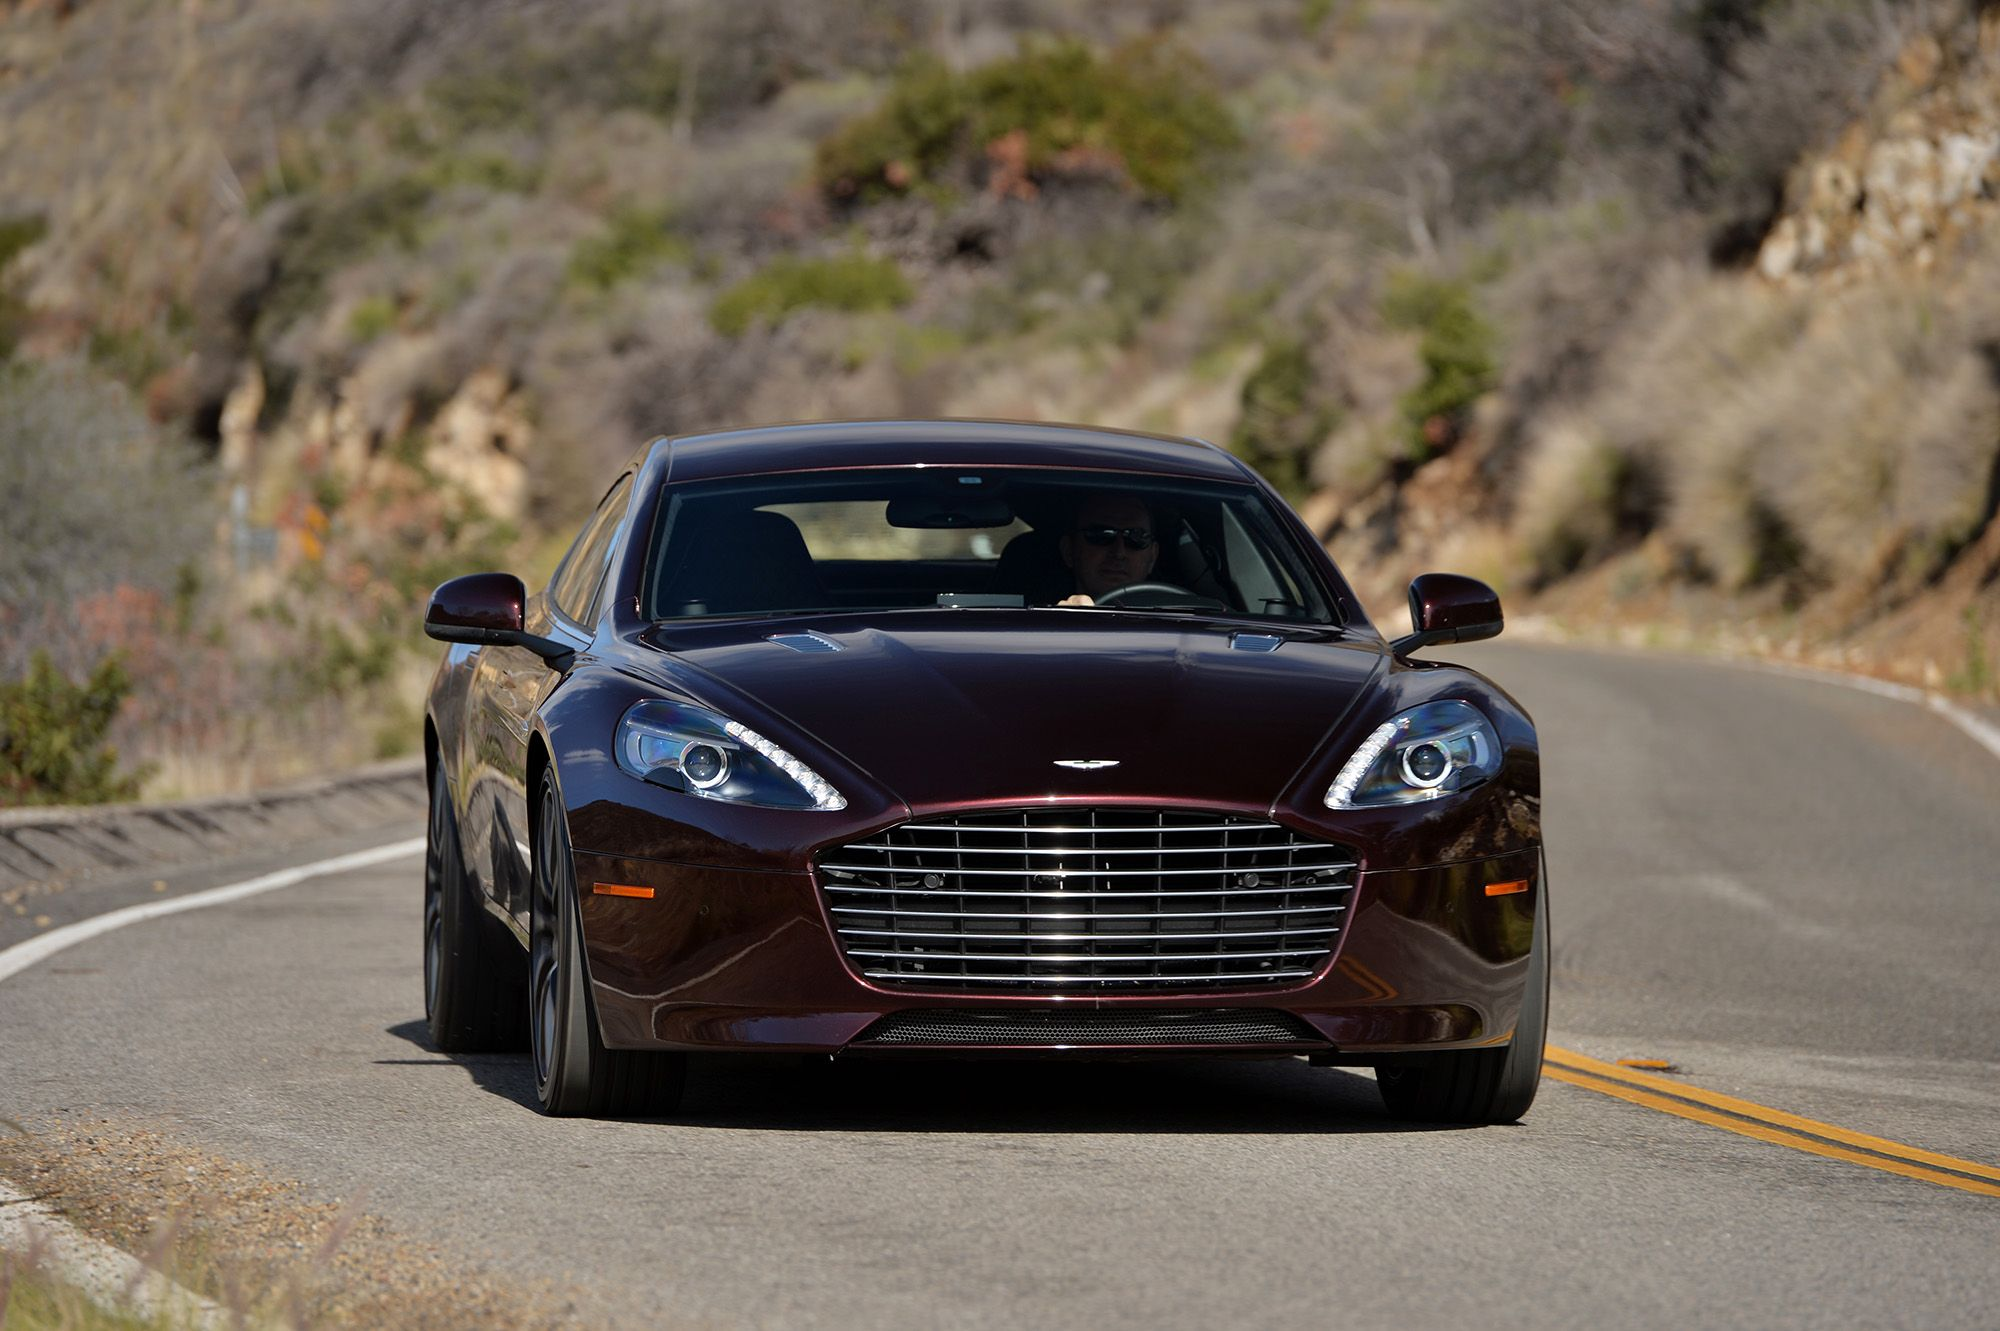 aston martin rapide s the world 39 s most beautiful 4 door sports car discover more at http www. Black Bedroom Furniture Sets. Home Design Ideas